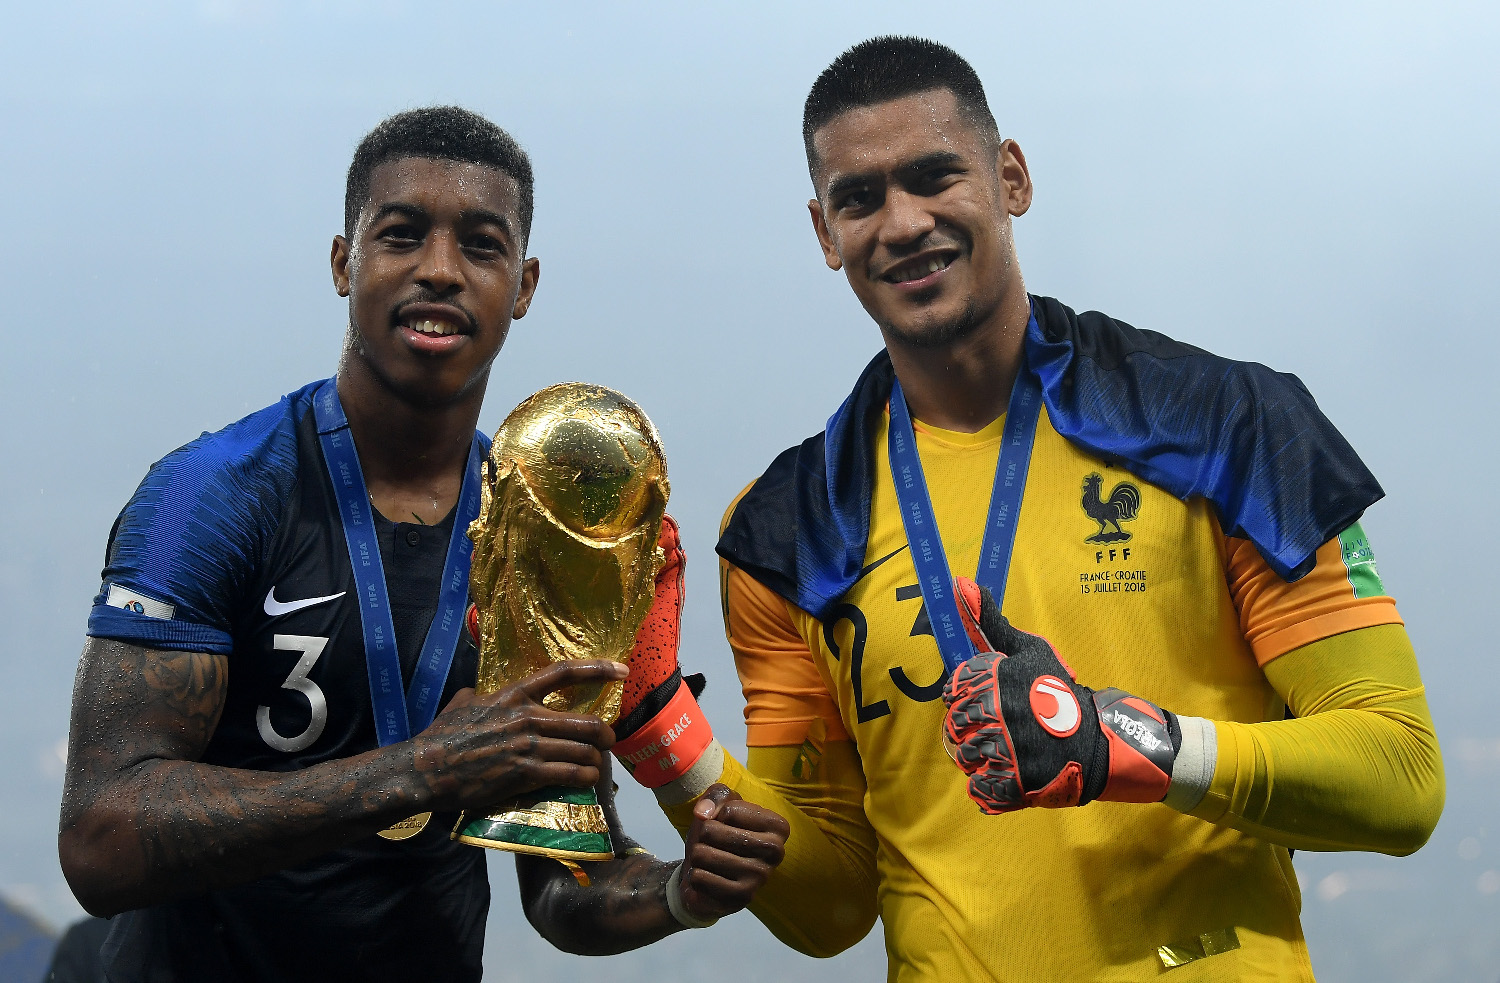 MOSCOW, RUSSIA - JULY 15:  Presnel Kimpembe and Alphonse Areola of France celebrate with the World Cup trophy following the 2018 FIFA World Cup Final between France and Croatia at Luzhniki Stadium on July 15, 2018 in Moscow, Russia.  (Photo by Matthias Hangst/Getty Images)